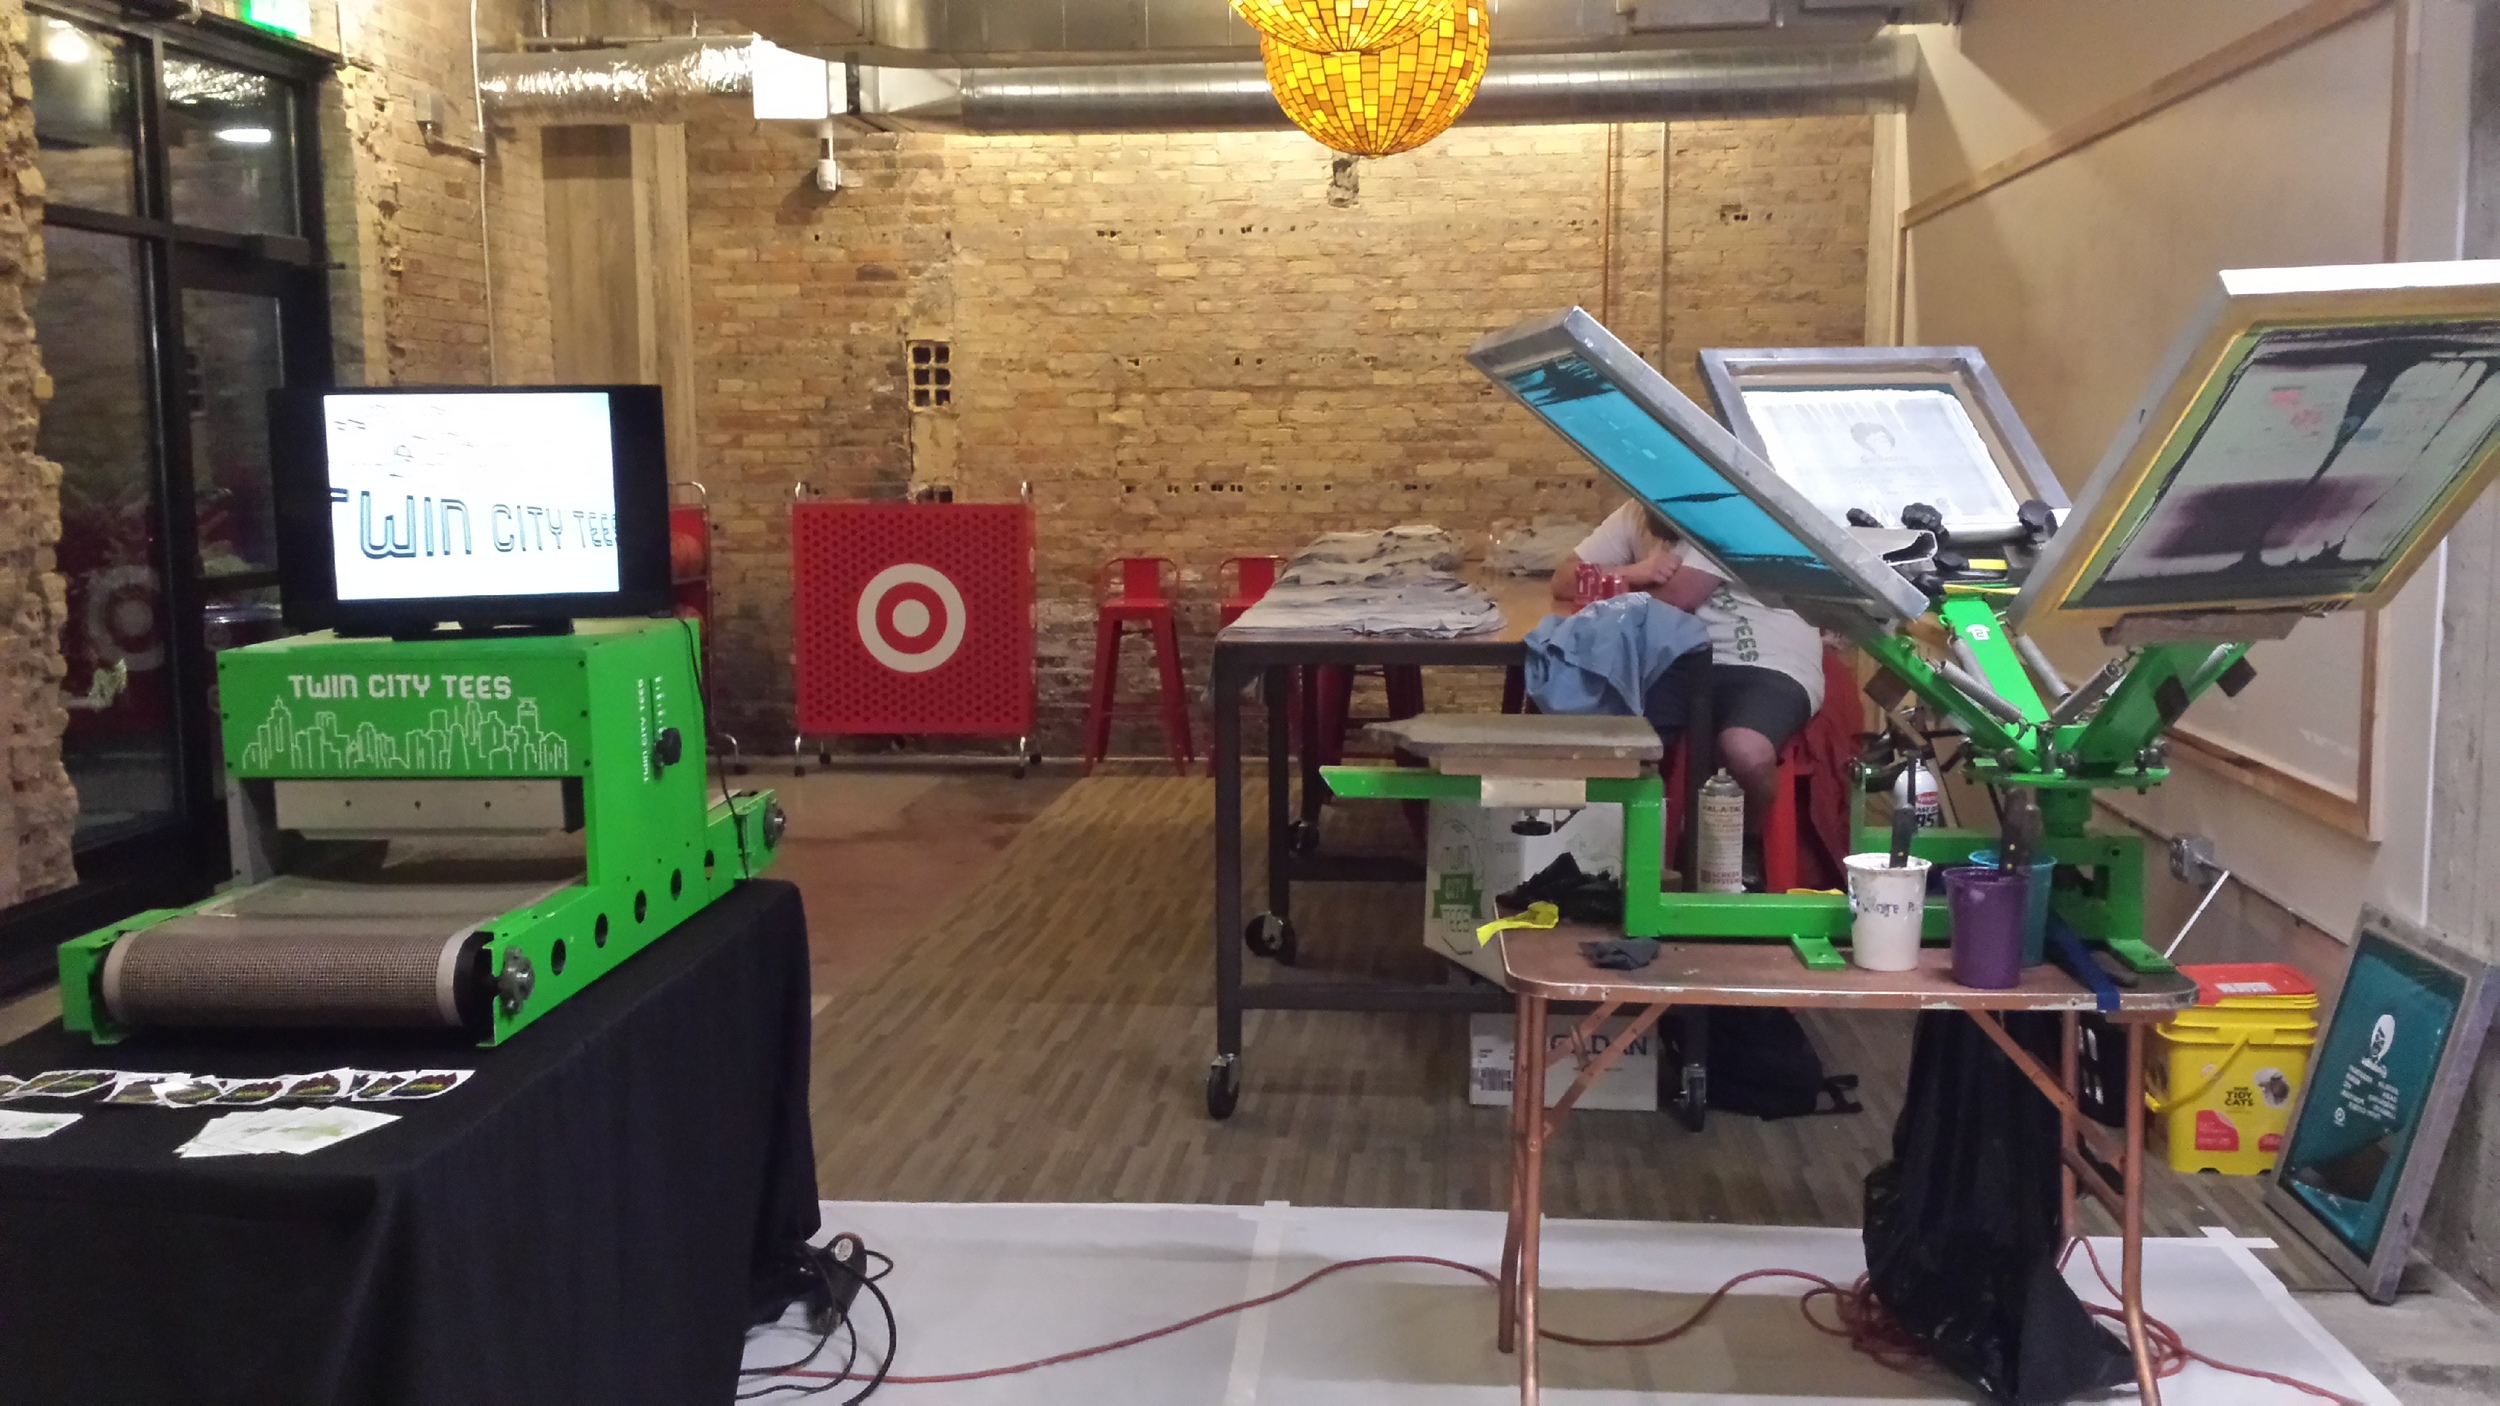 Geekettes-Target-Commons-MN-live-printing-Twin-City-Tees-4.jpg